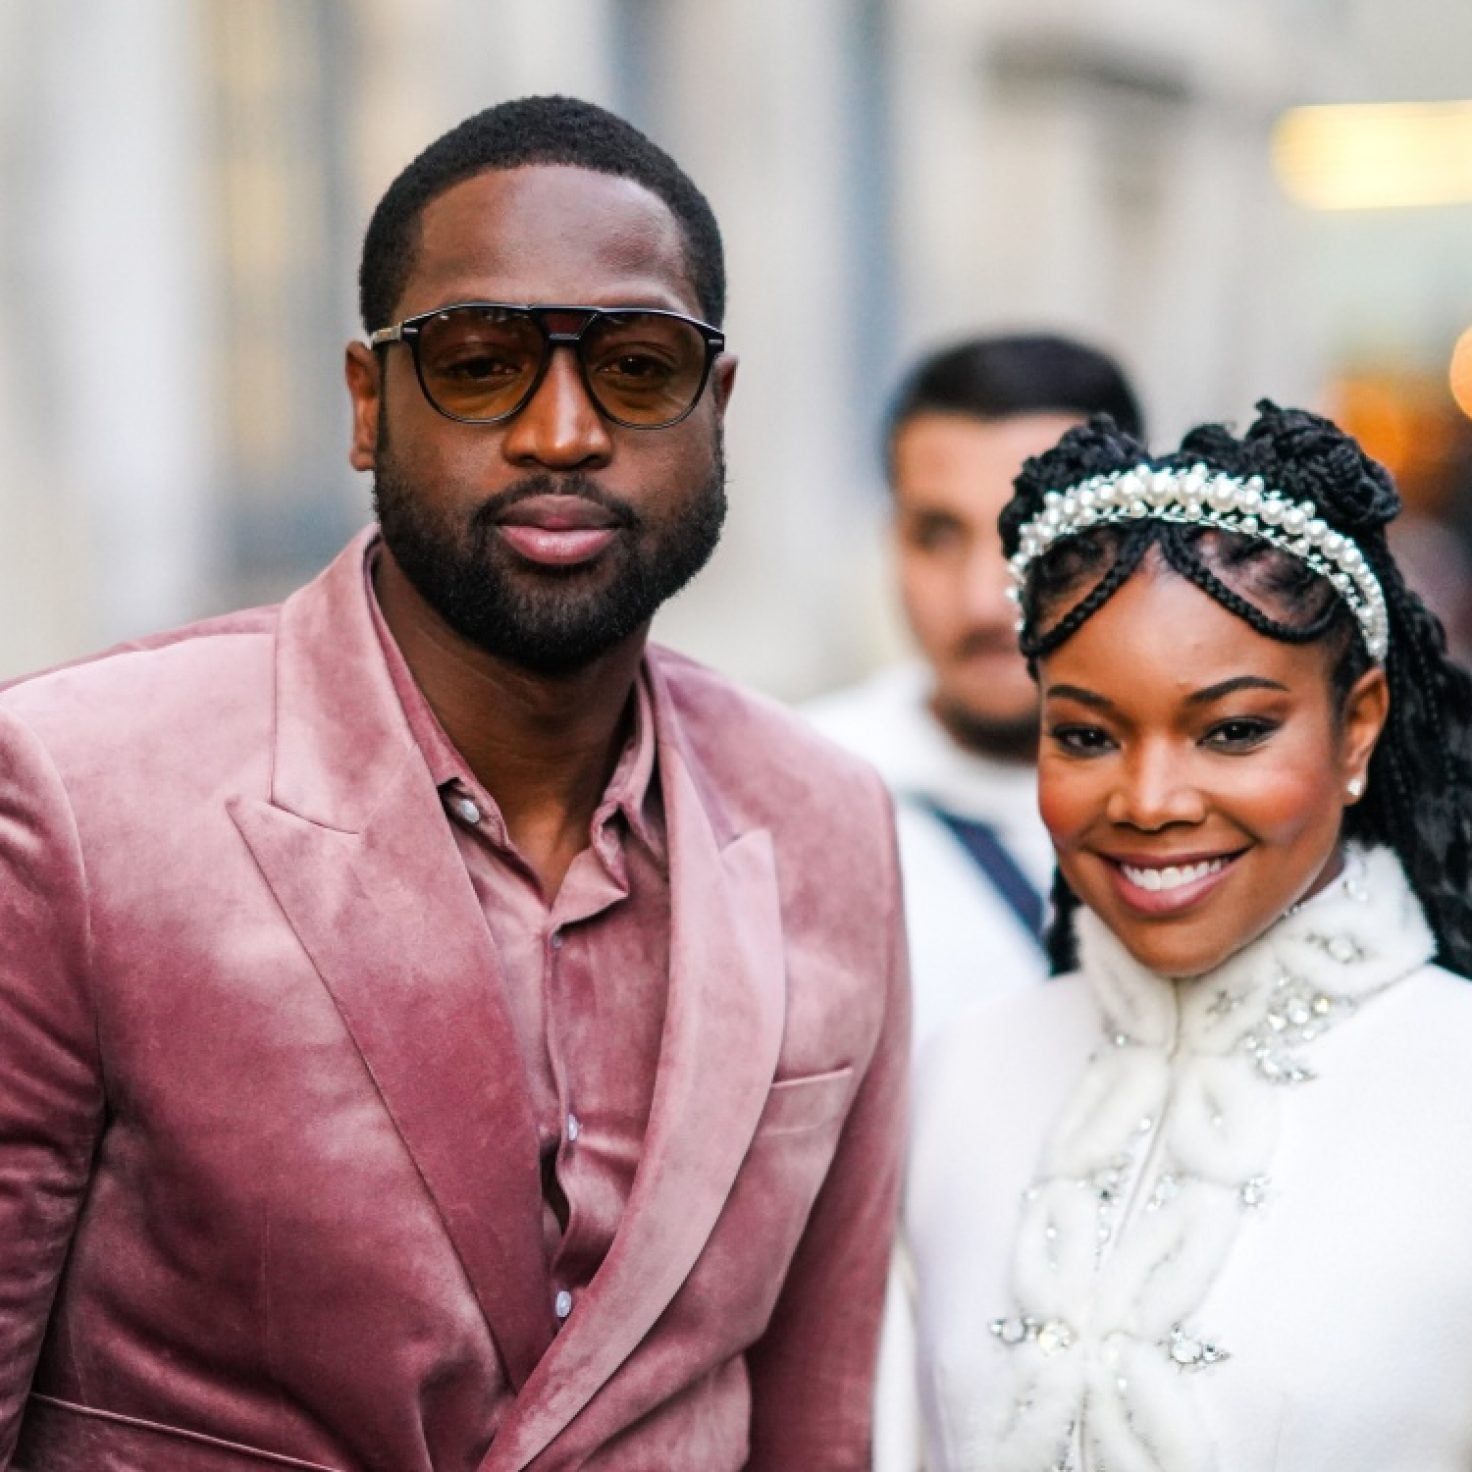 Gabrielle Union & Dwyane Wade Join ESSENCE + New Voices Entrepreneur Virtual Summit Speaker Lineup